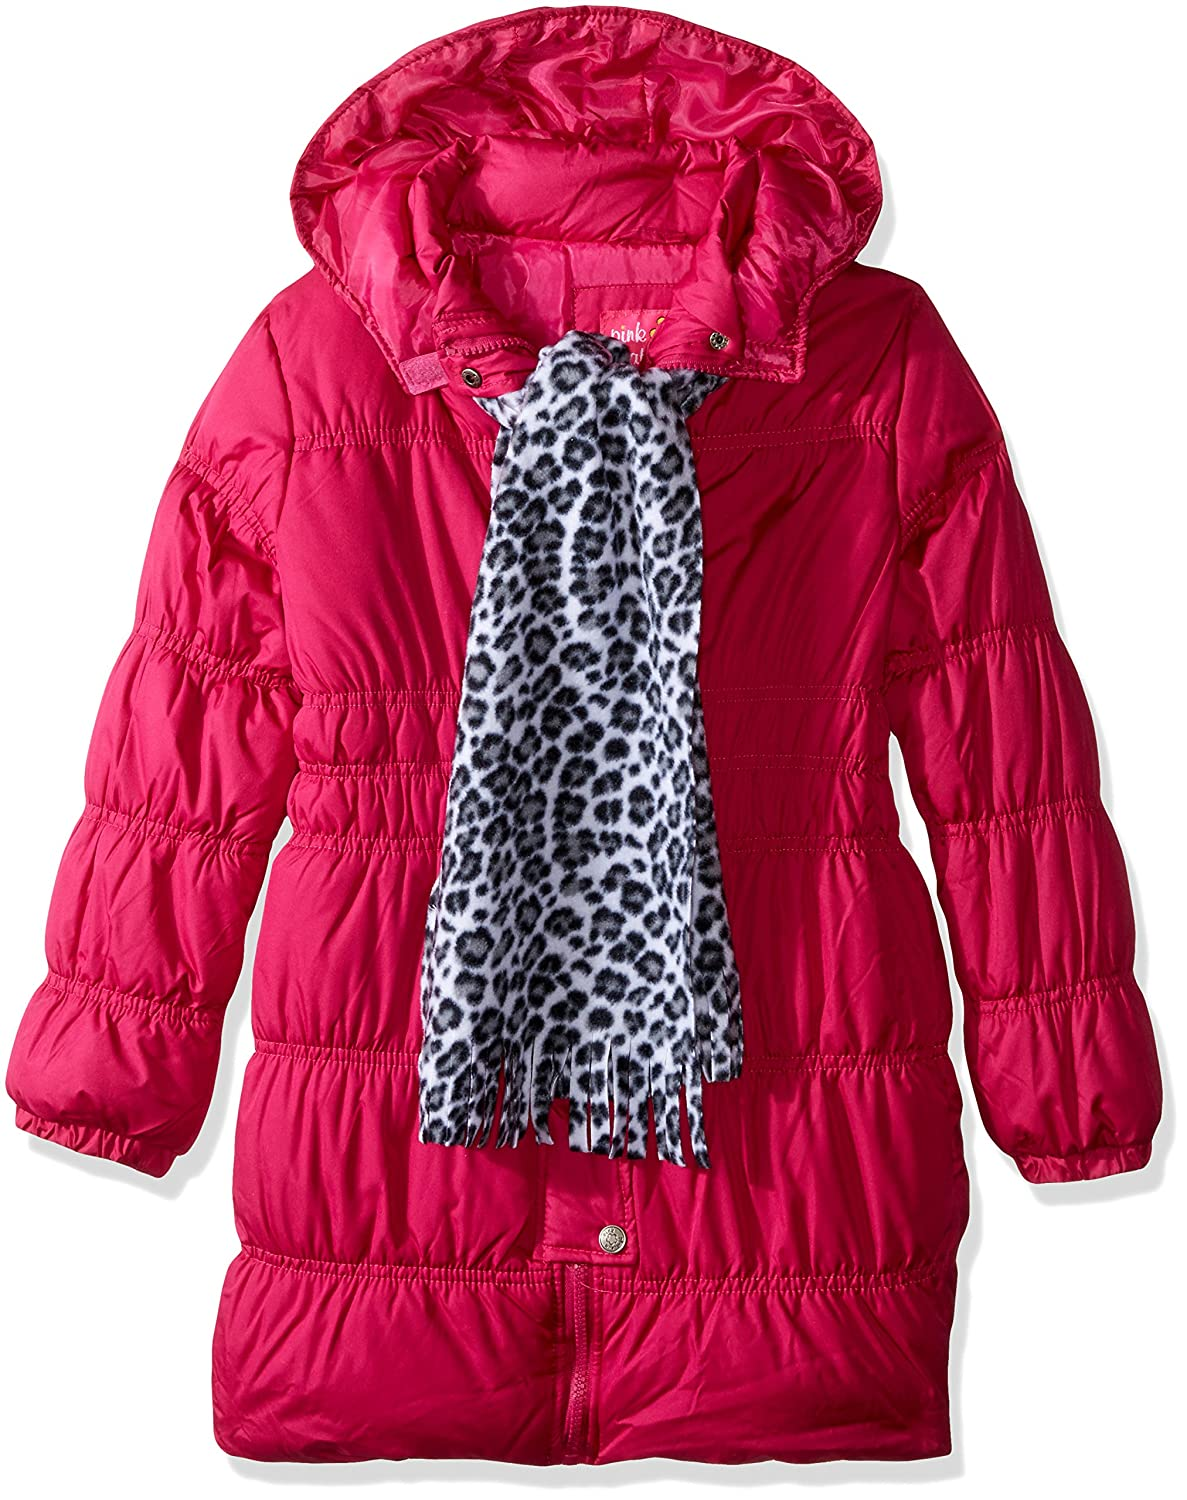 Pink Platinum Girls Long Puffer Jacket with Accessories 74394